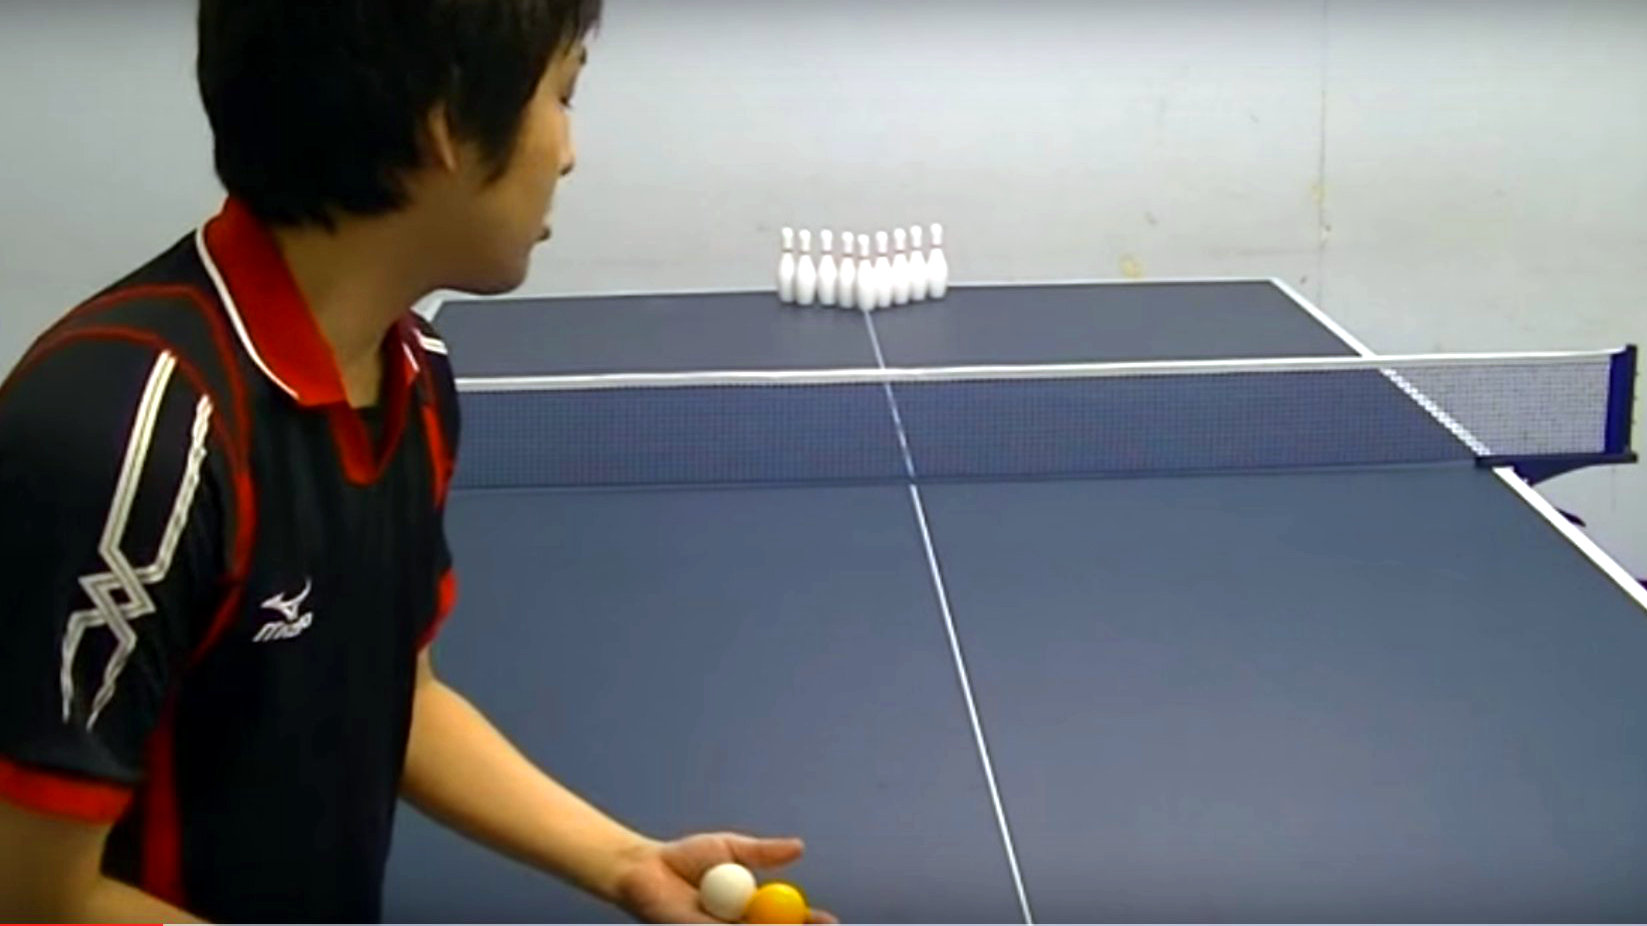 Ping Pong-Extreme